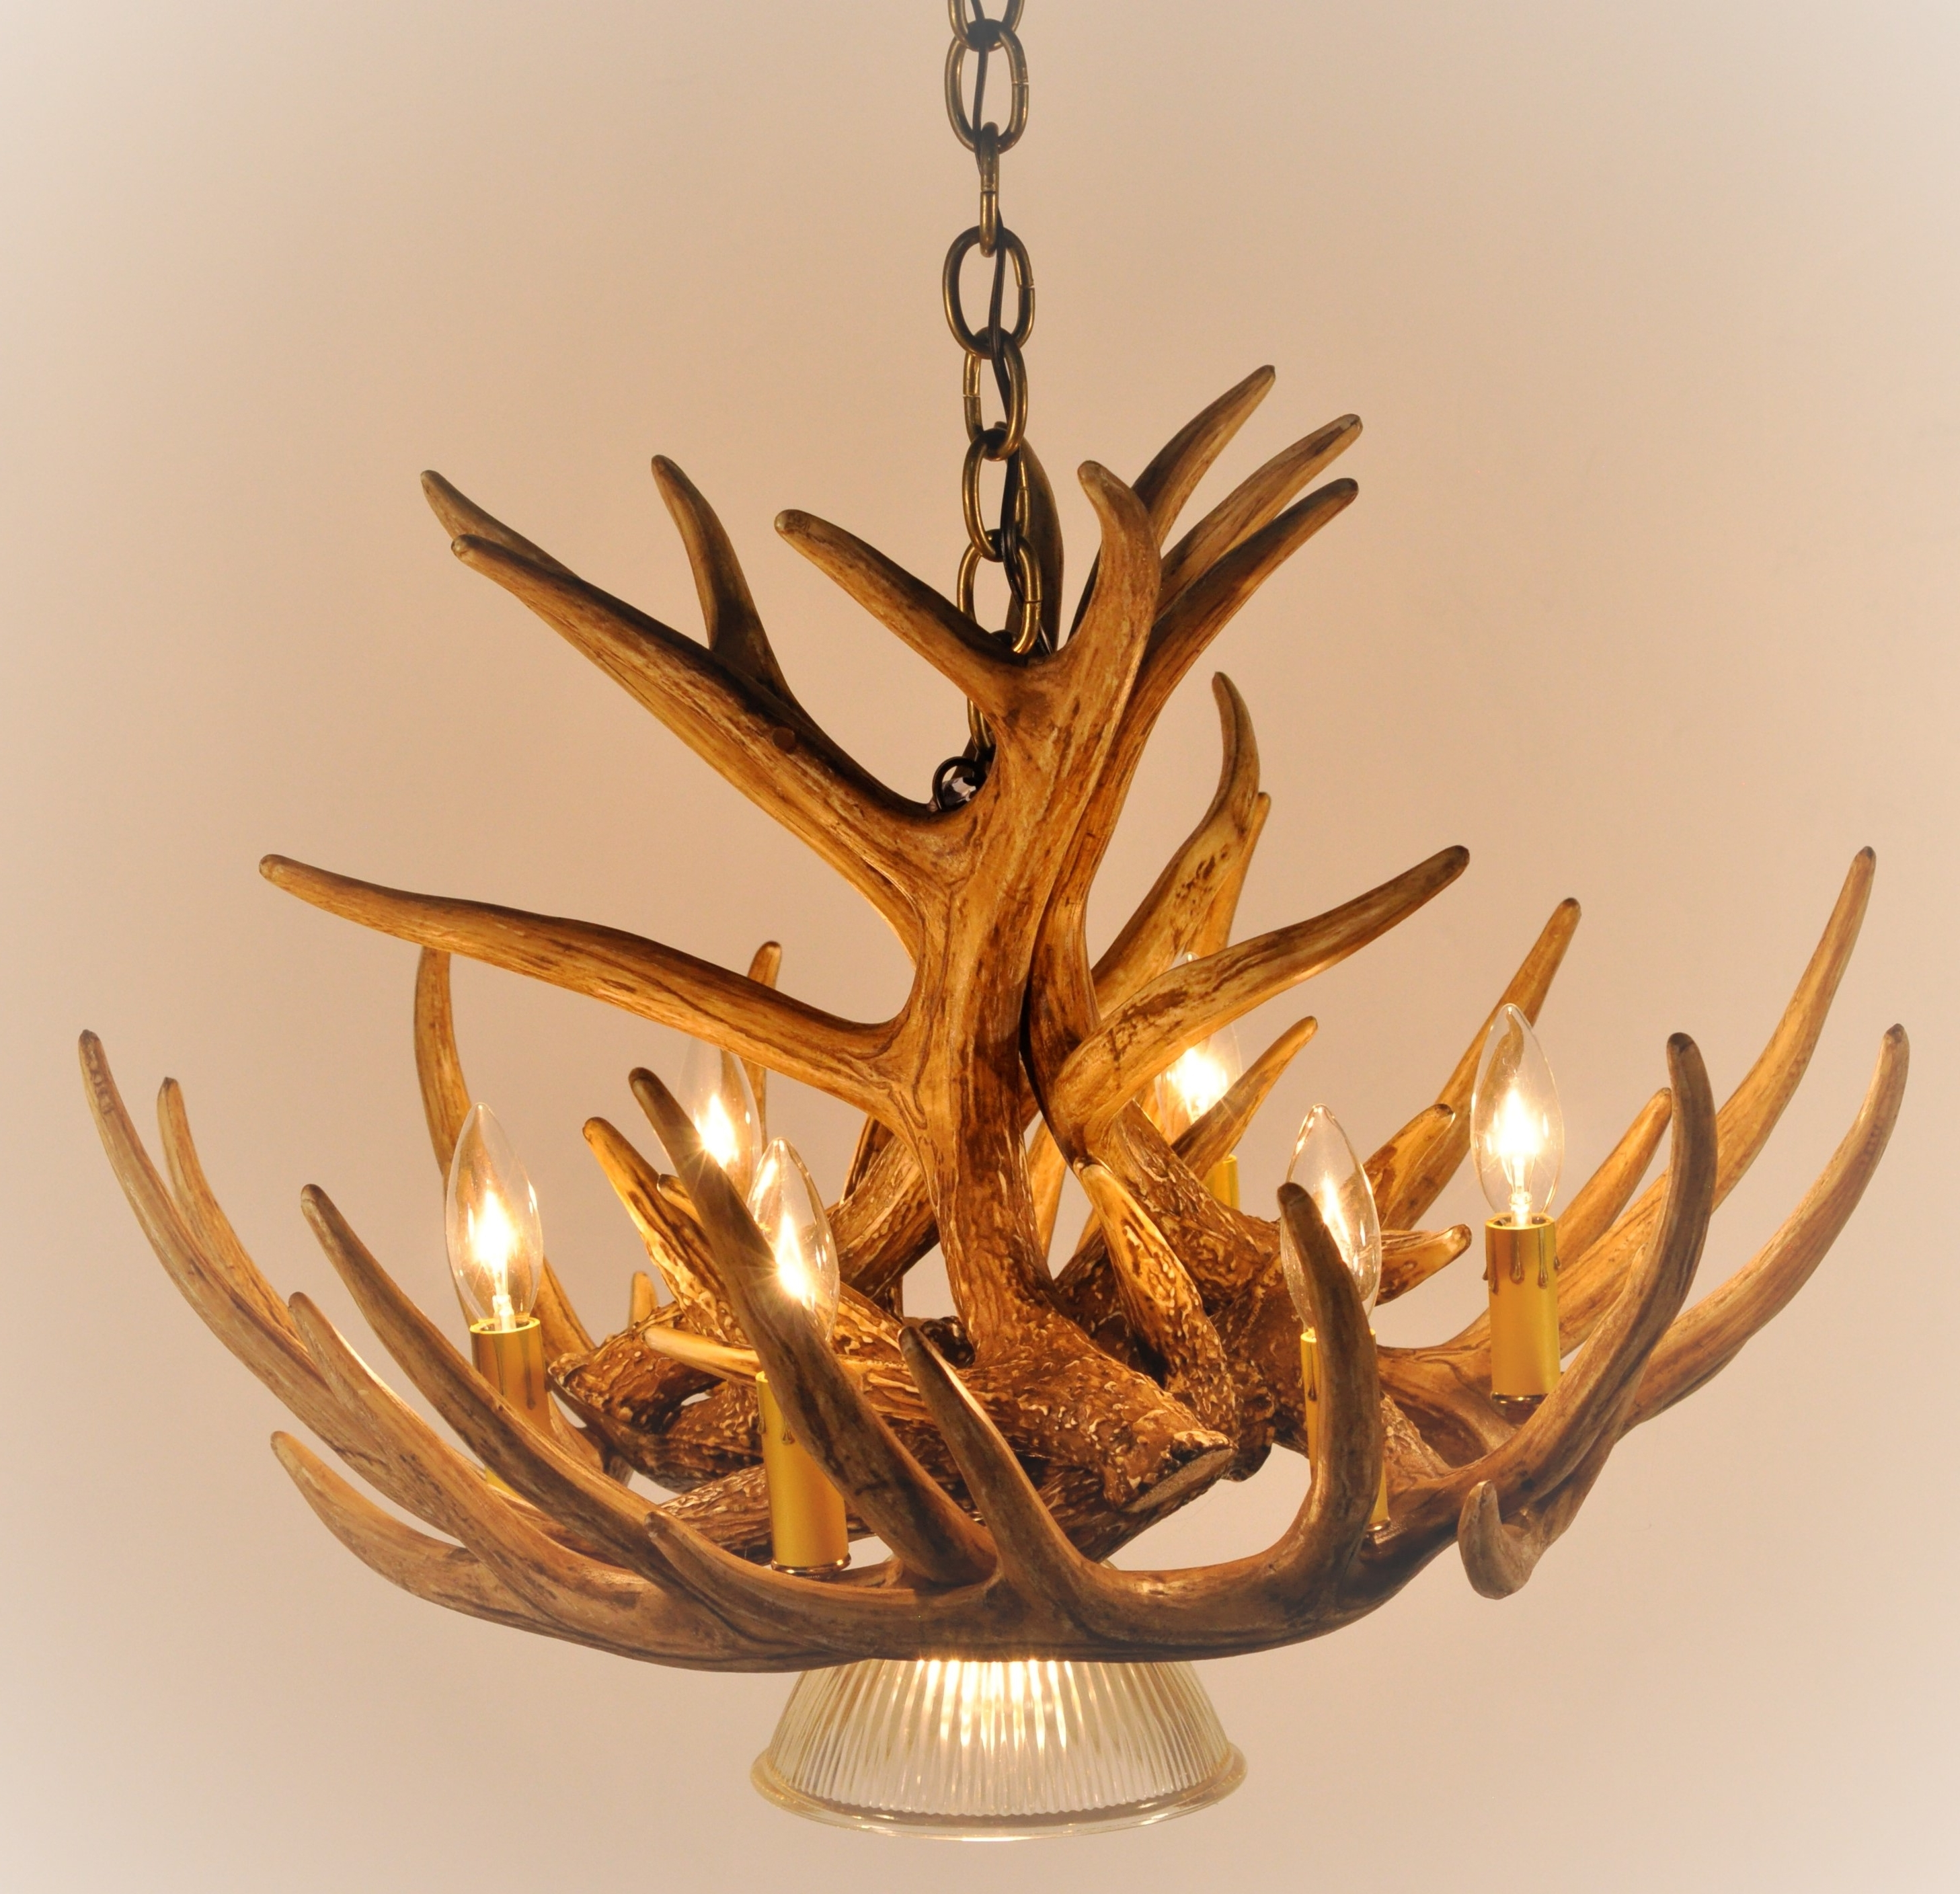 Most Recent Whitetail Deer 9 Antler Cascade Chandelier With 1 Downlight* – Cast Inside Antler Chandeliers (View 2 of 20)